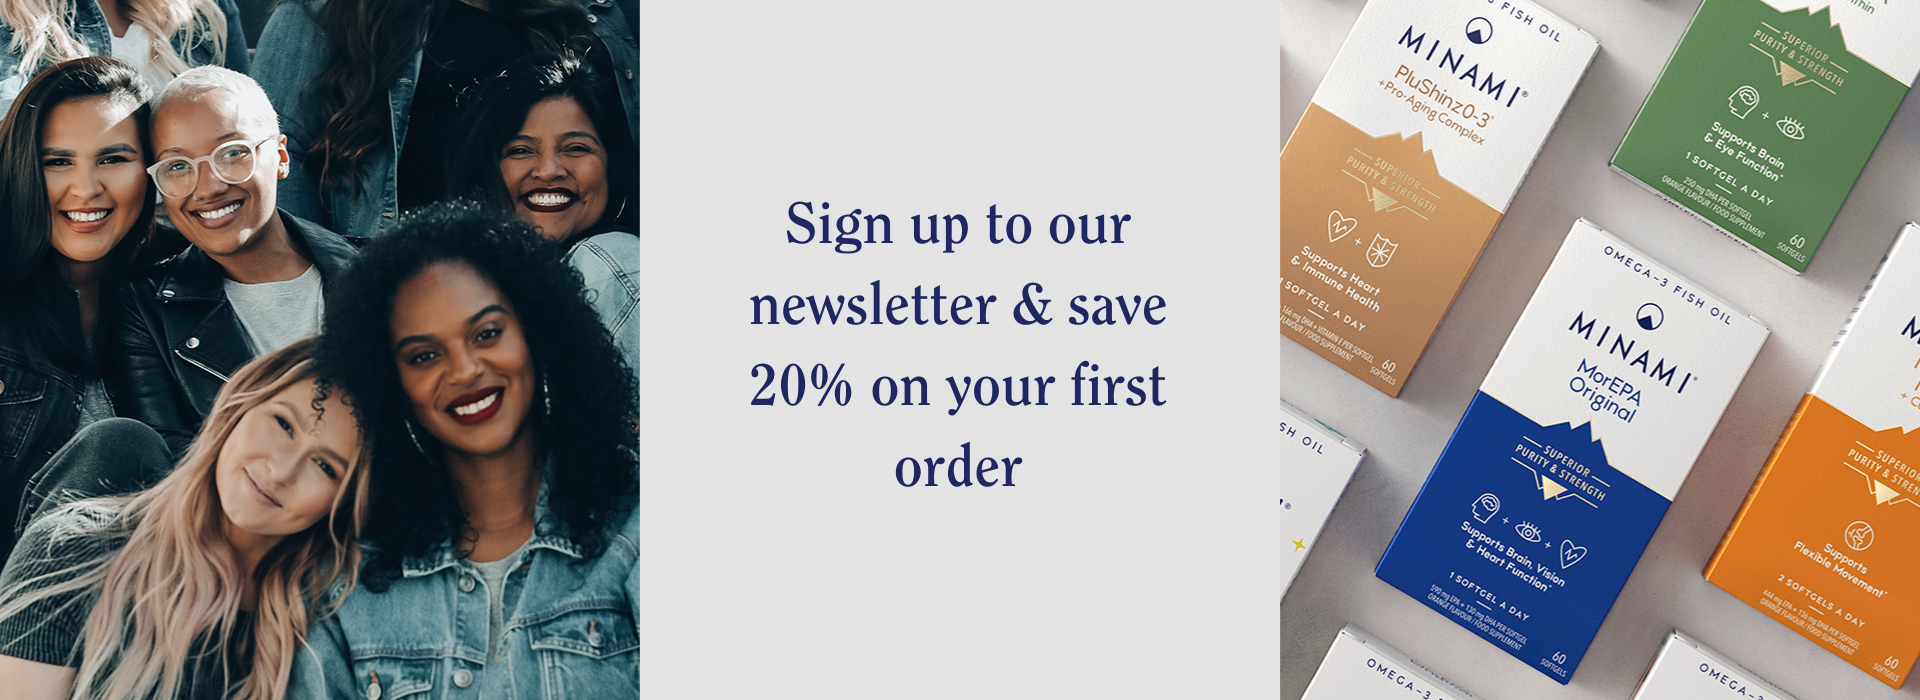 Sign up to our newsletter & save 20% on your first order